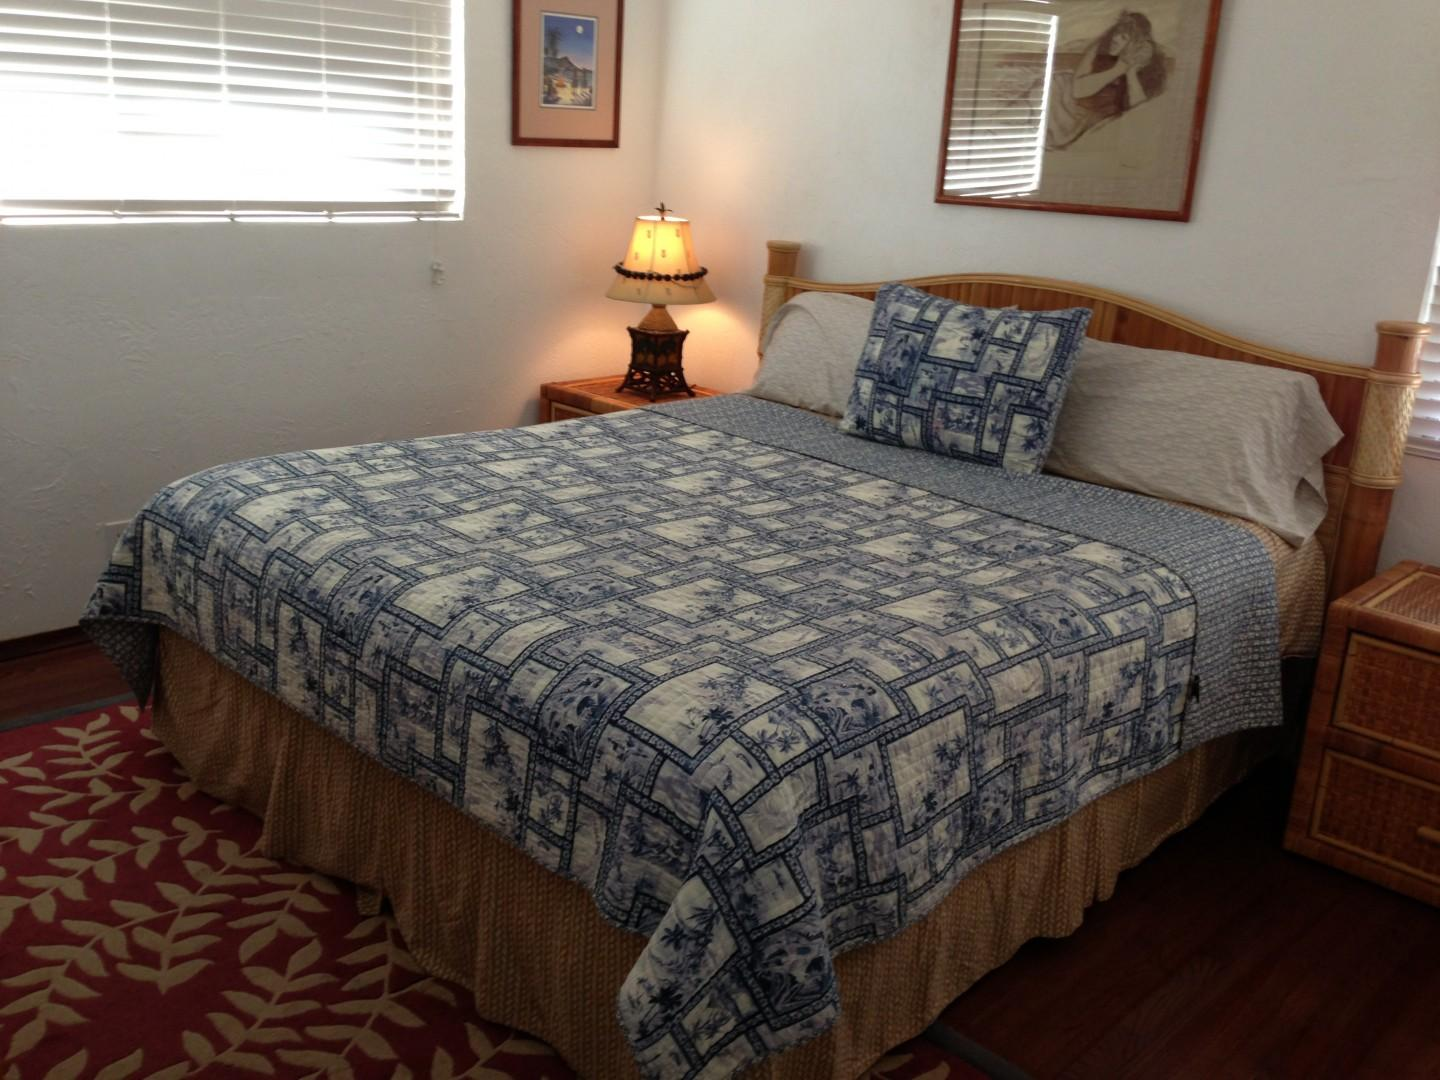 The second bedroom with a California king bed.